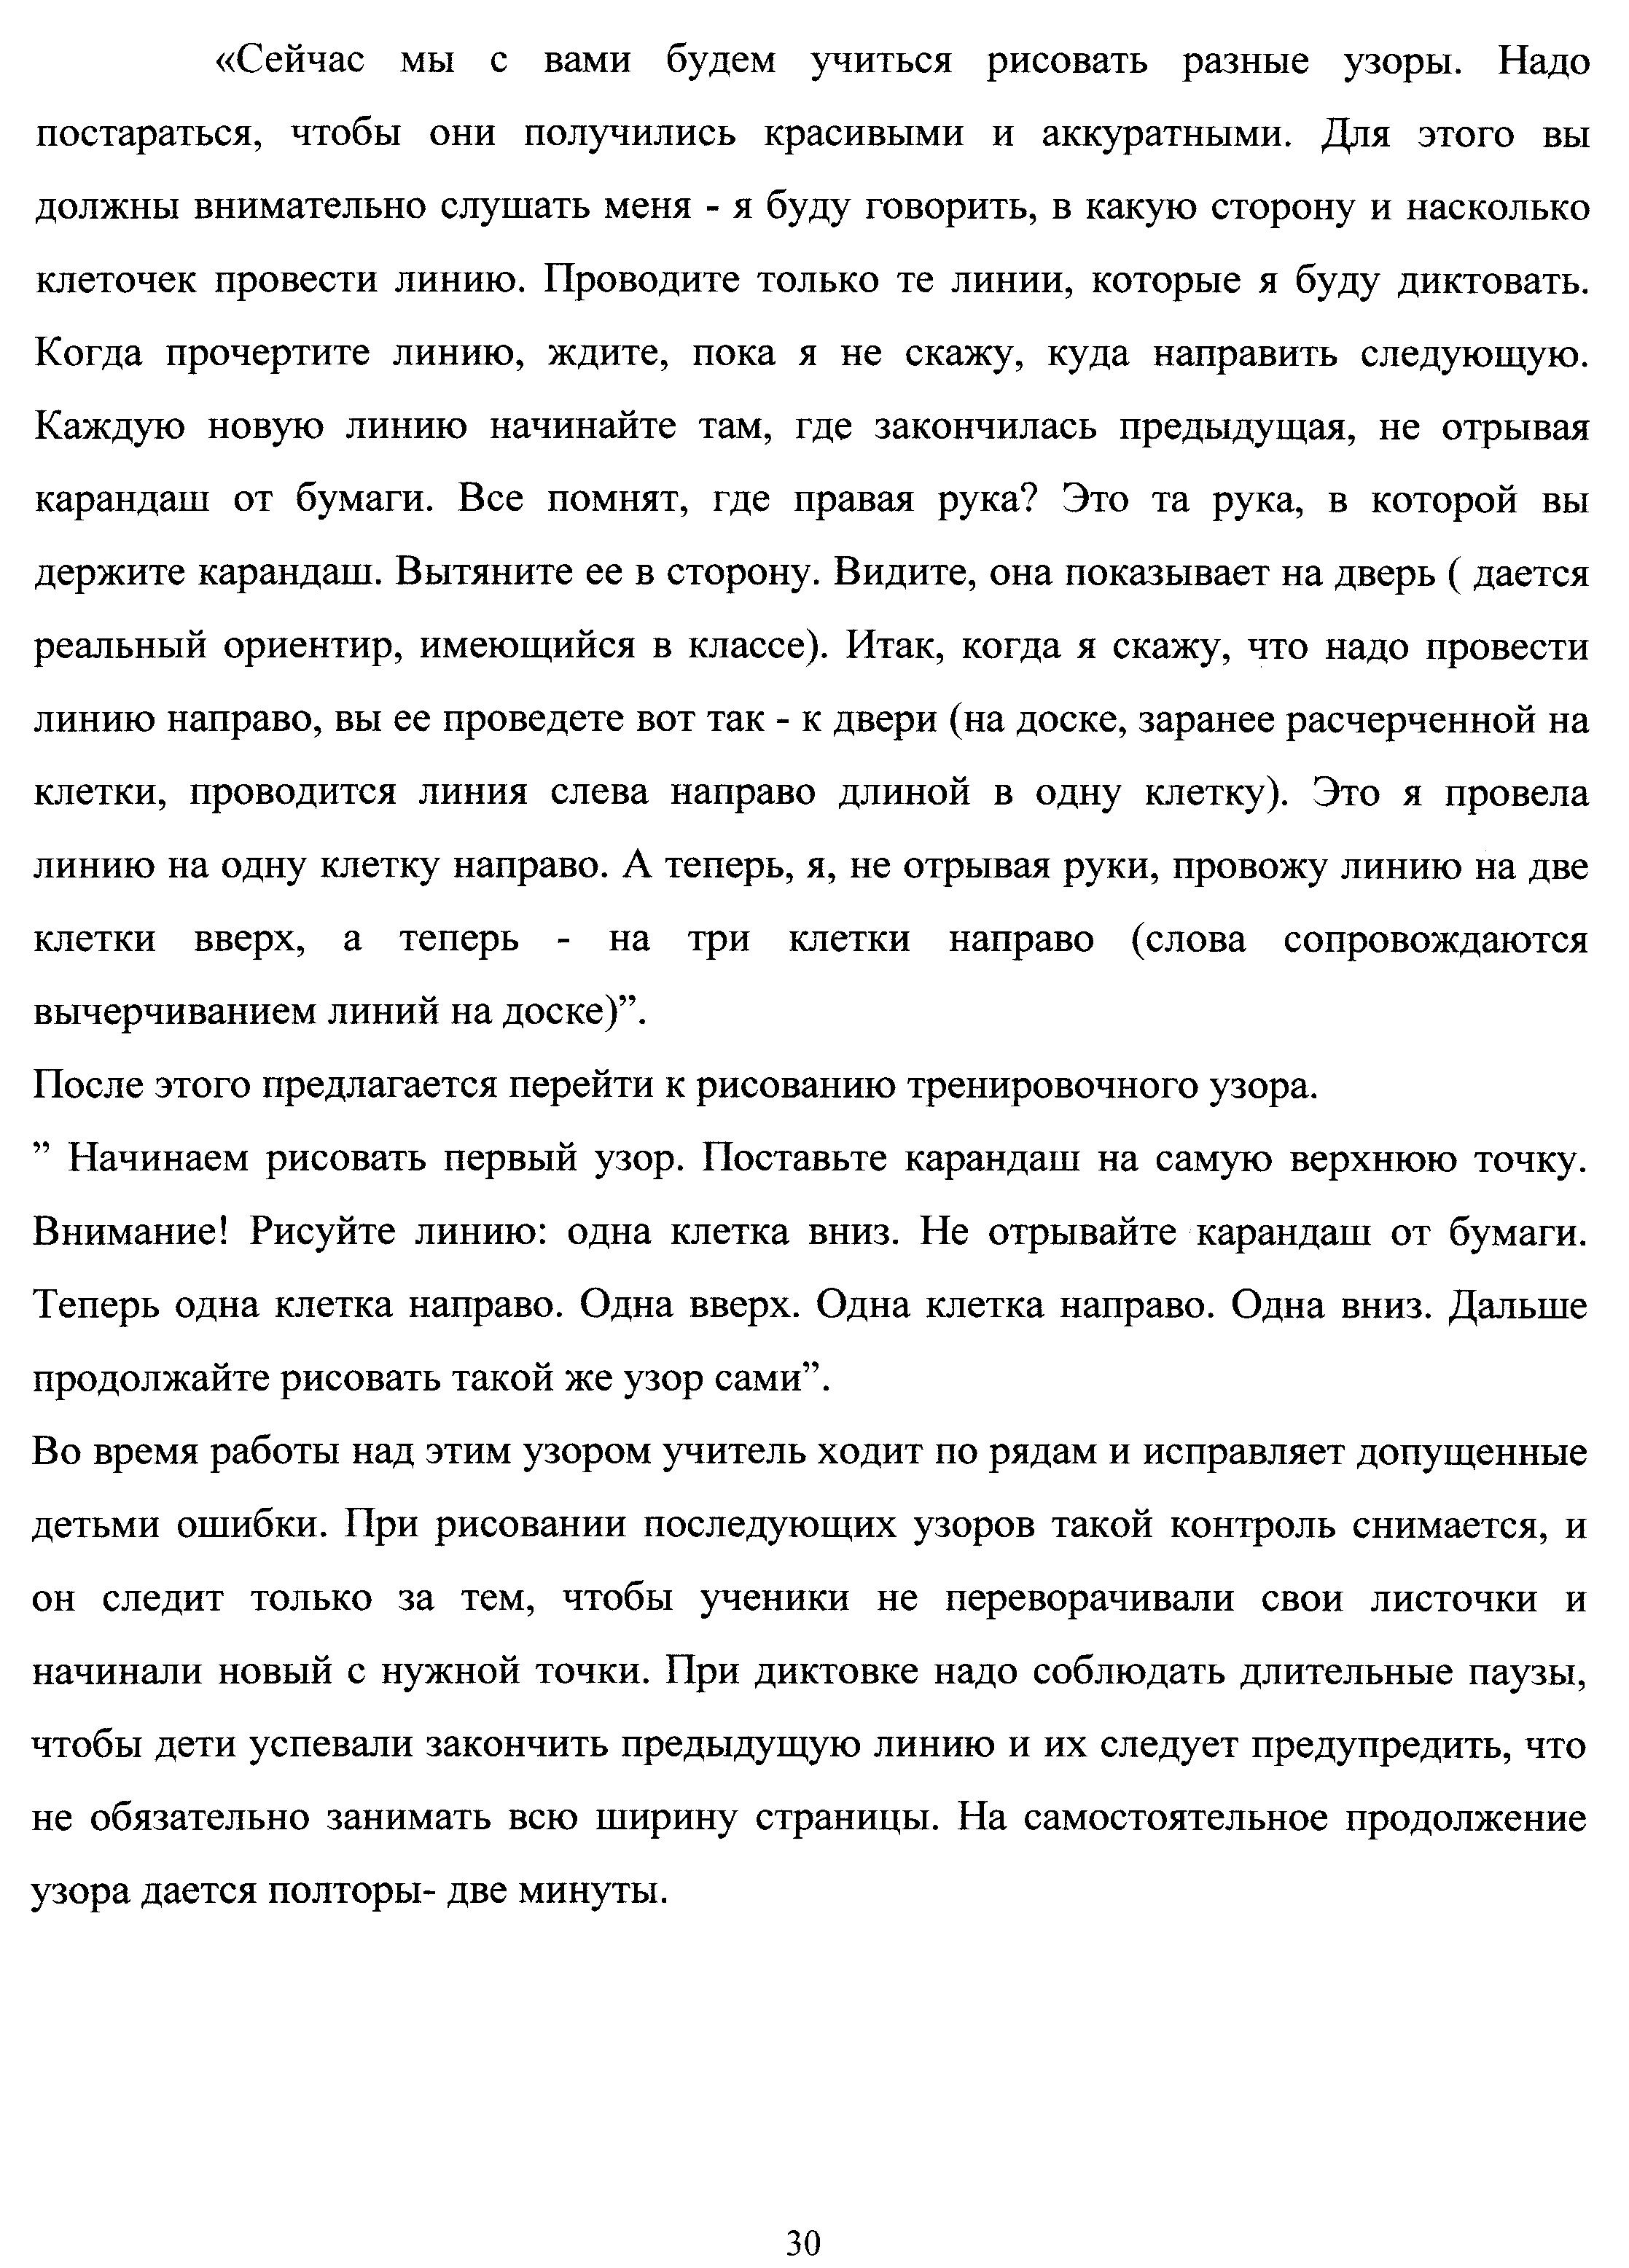 C:\Users\ЛАРИСА\Documents\Scanned Documents\Рисунок (134).jpg